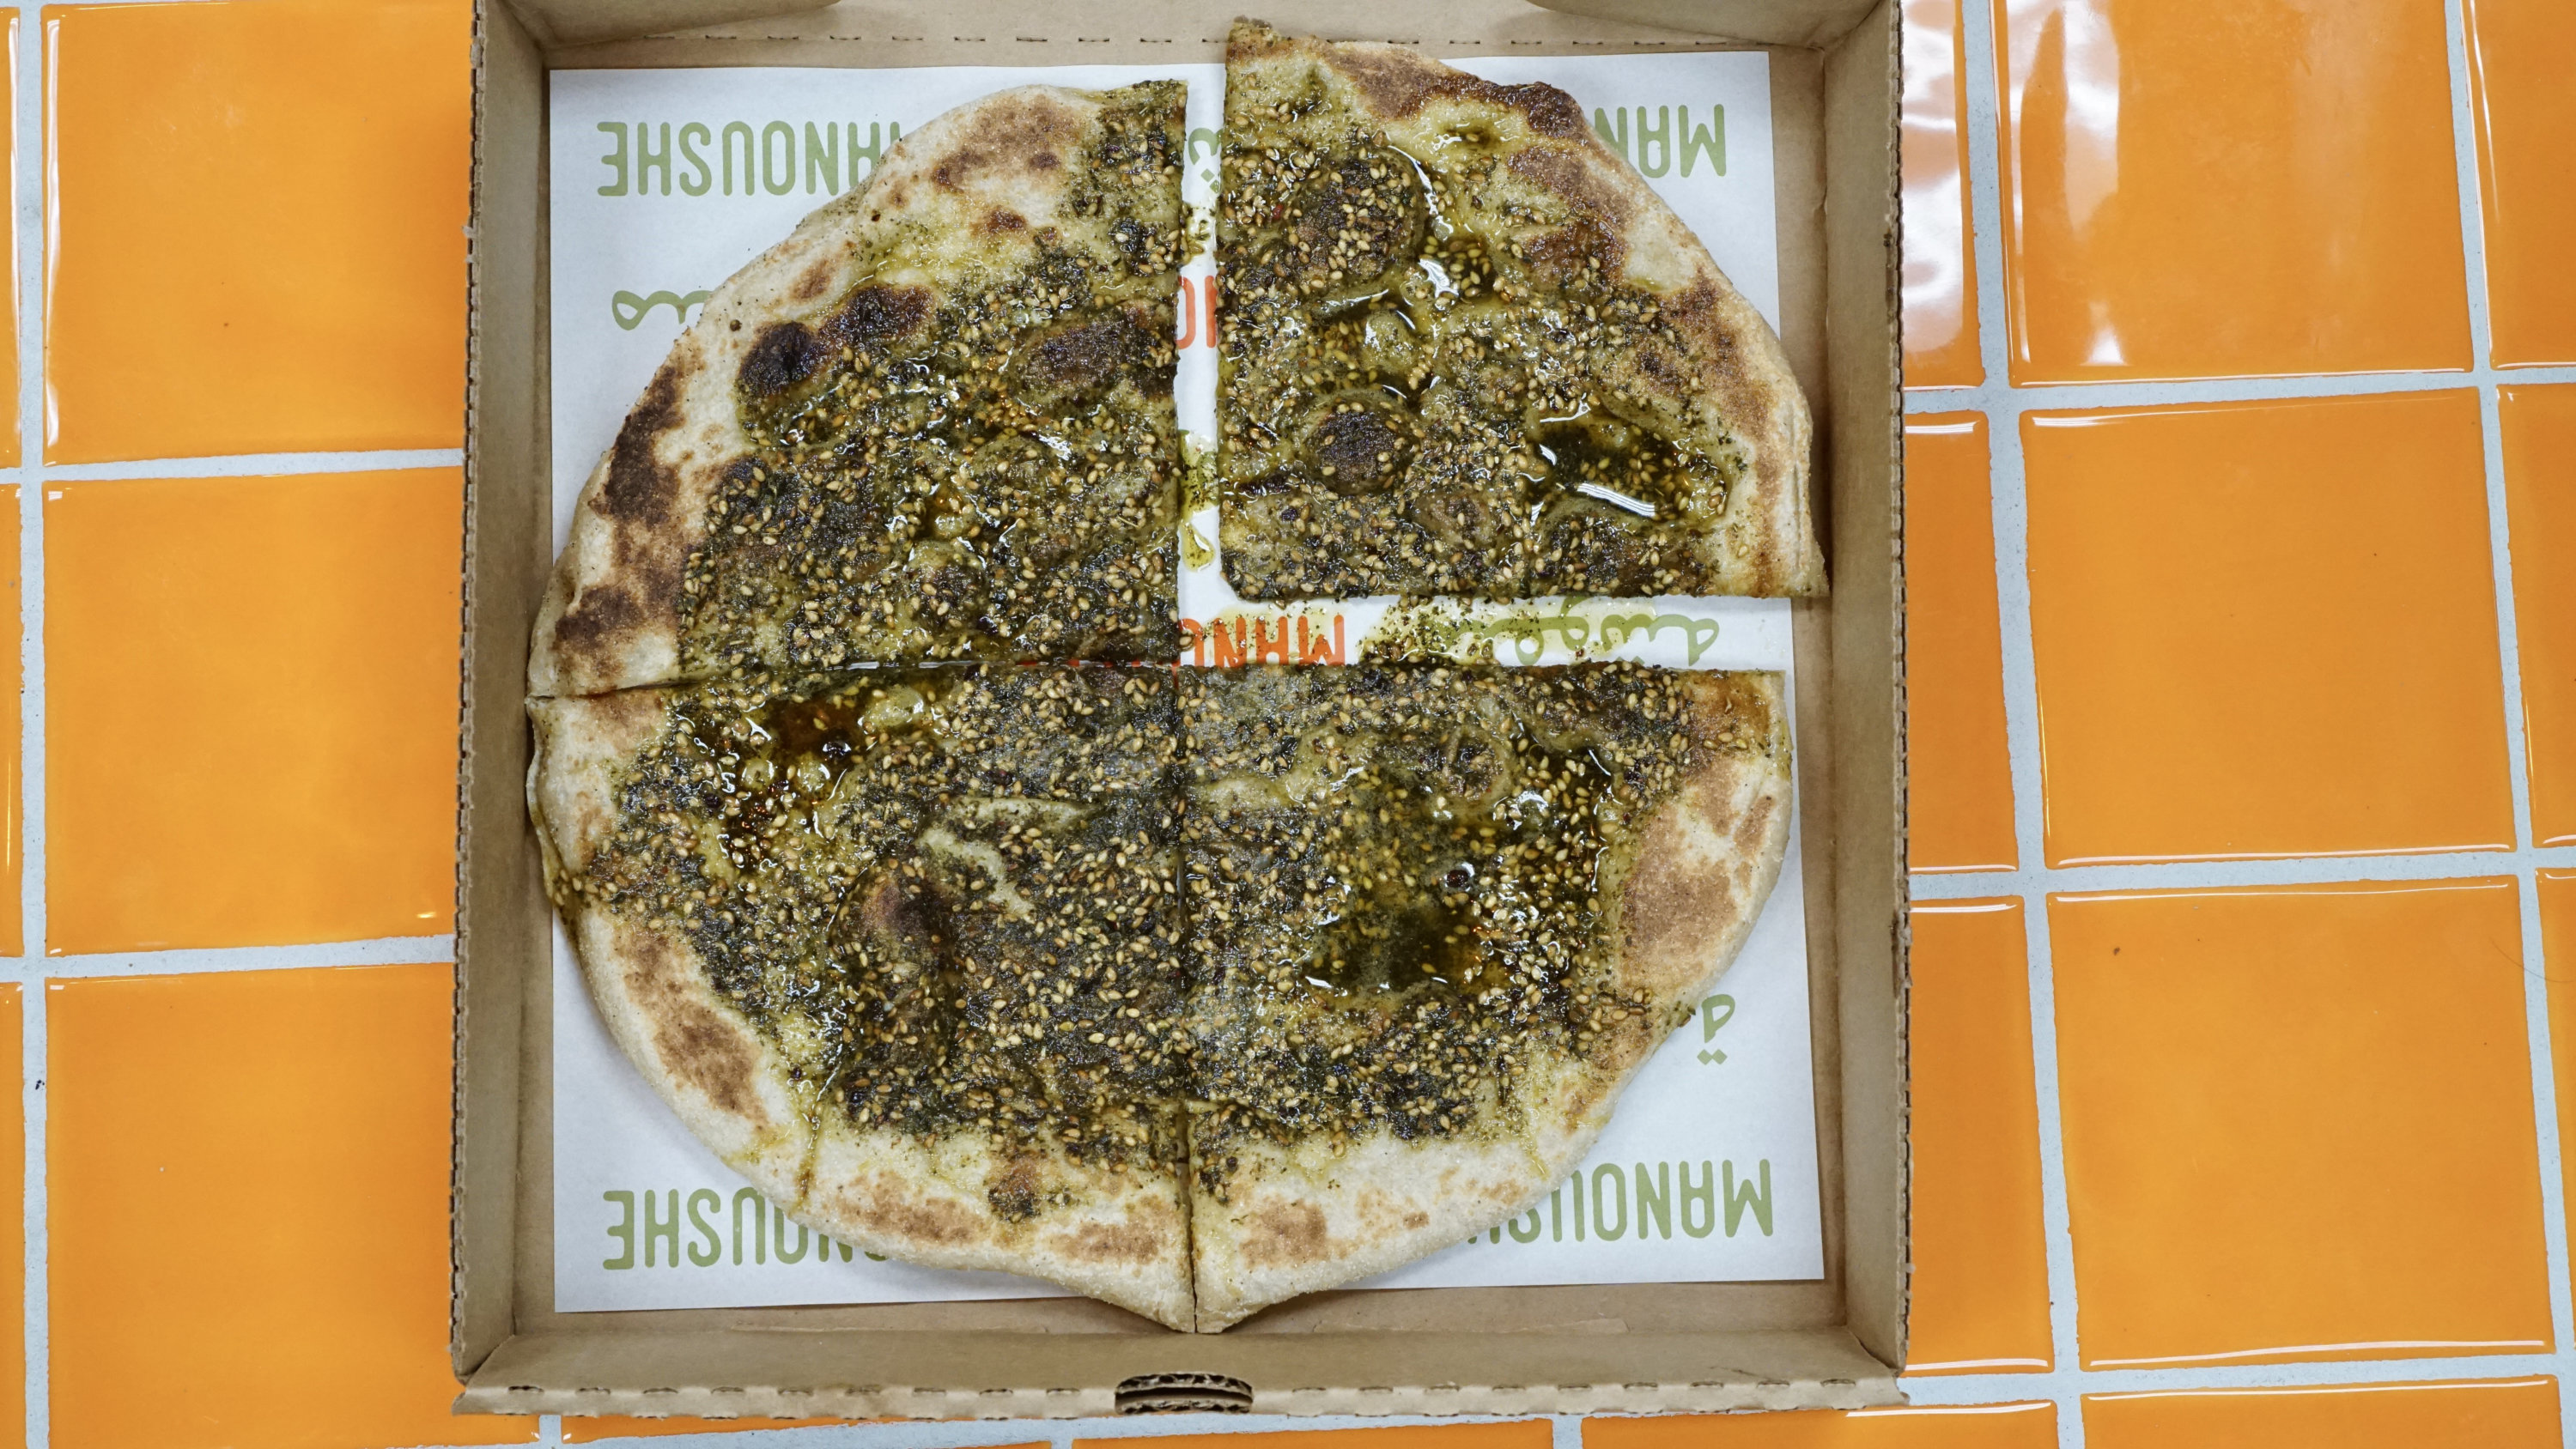 The classic manoushe is topped with za'atar. Photo courtesy of Z&Z.